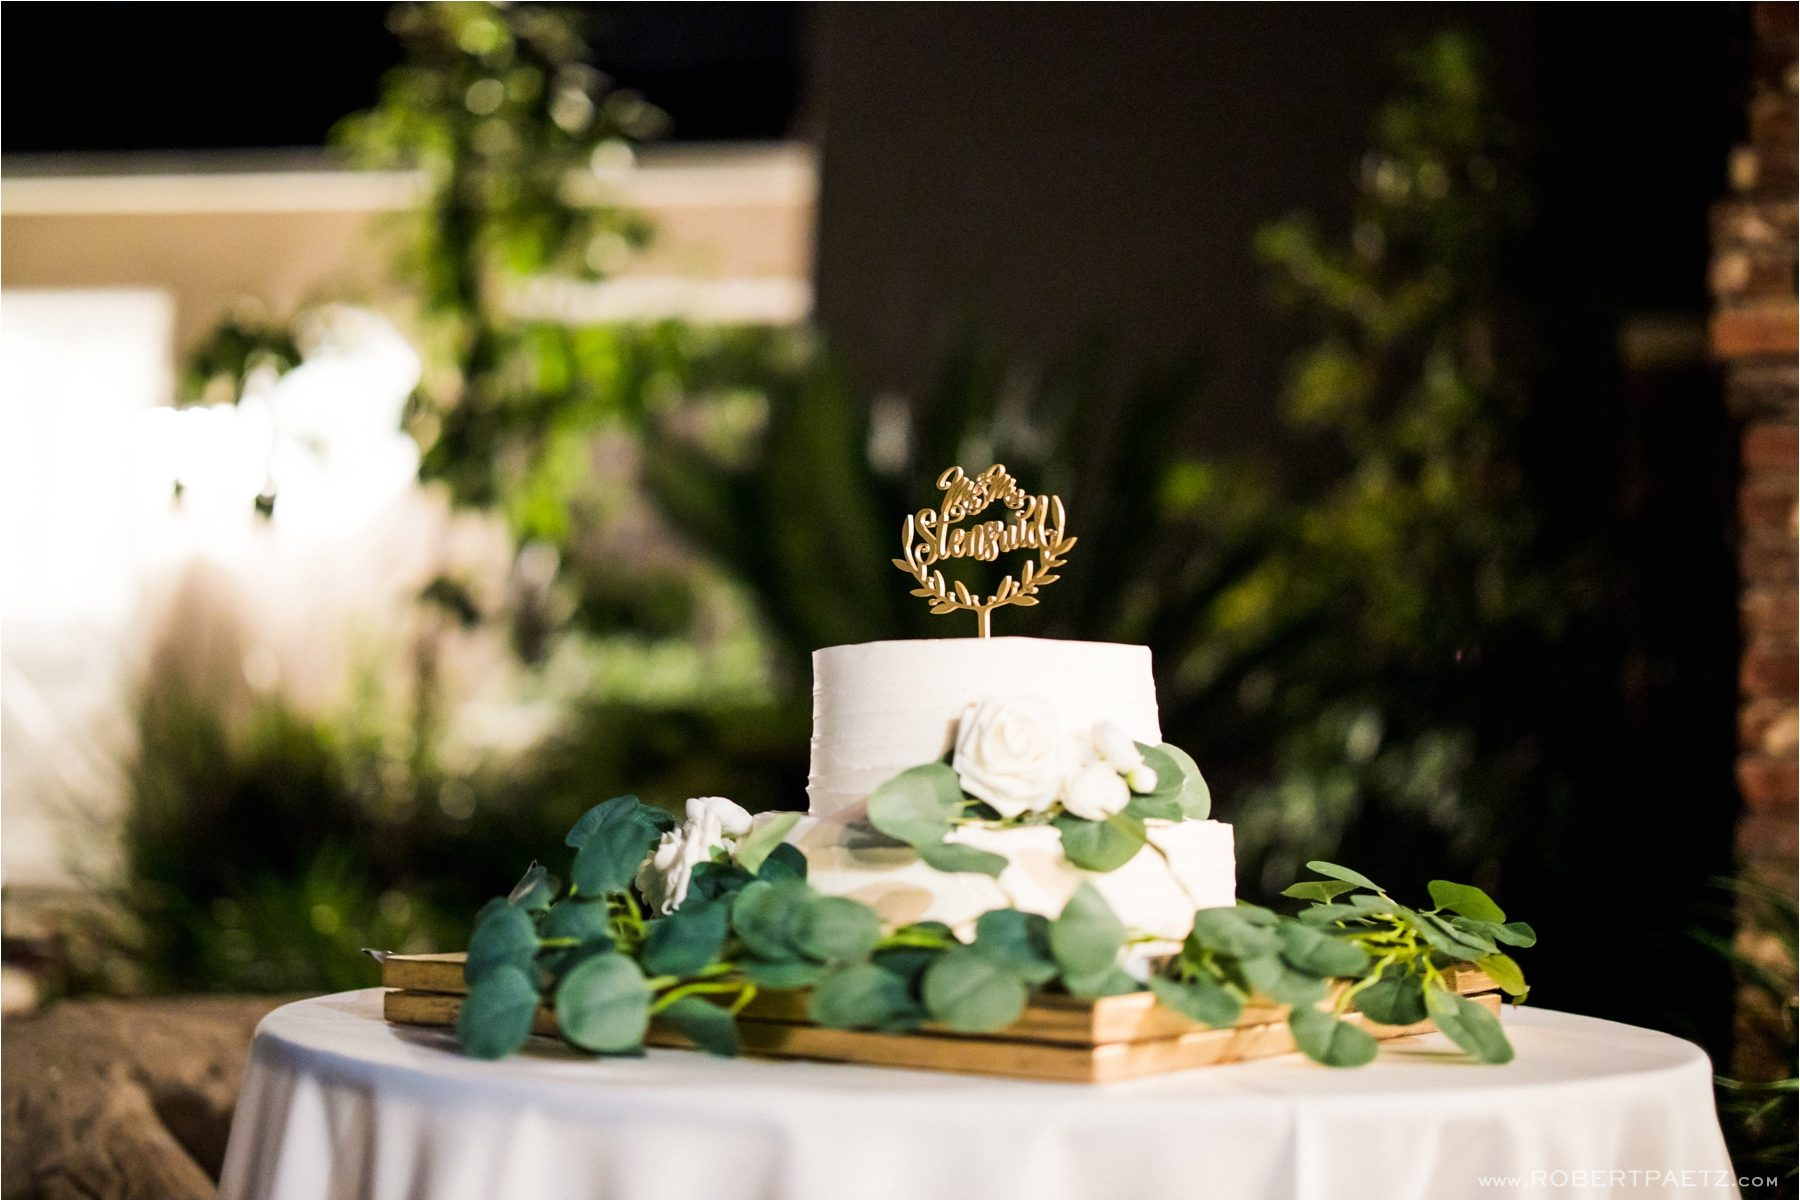 A backyard, social distanced, Zoom wedding in Arcadia, California, during the Covid-19 pandemic photographed by the destination wedding photographer, Robert Paetz.